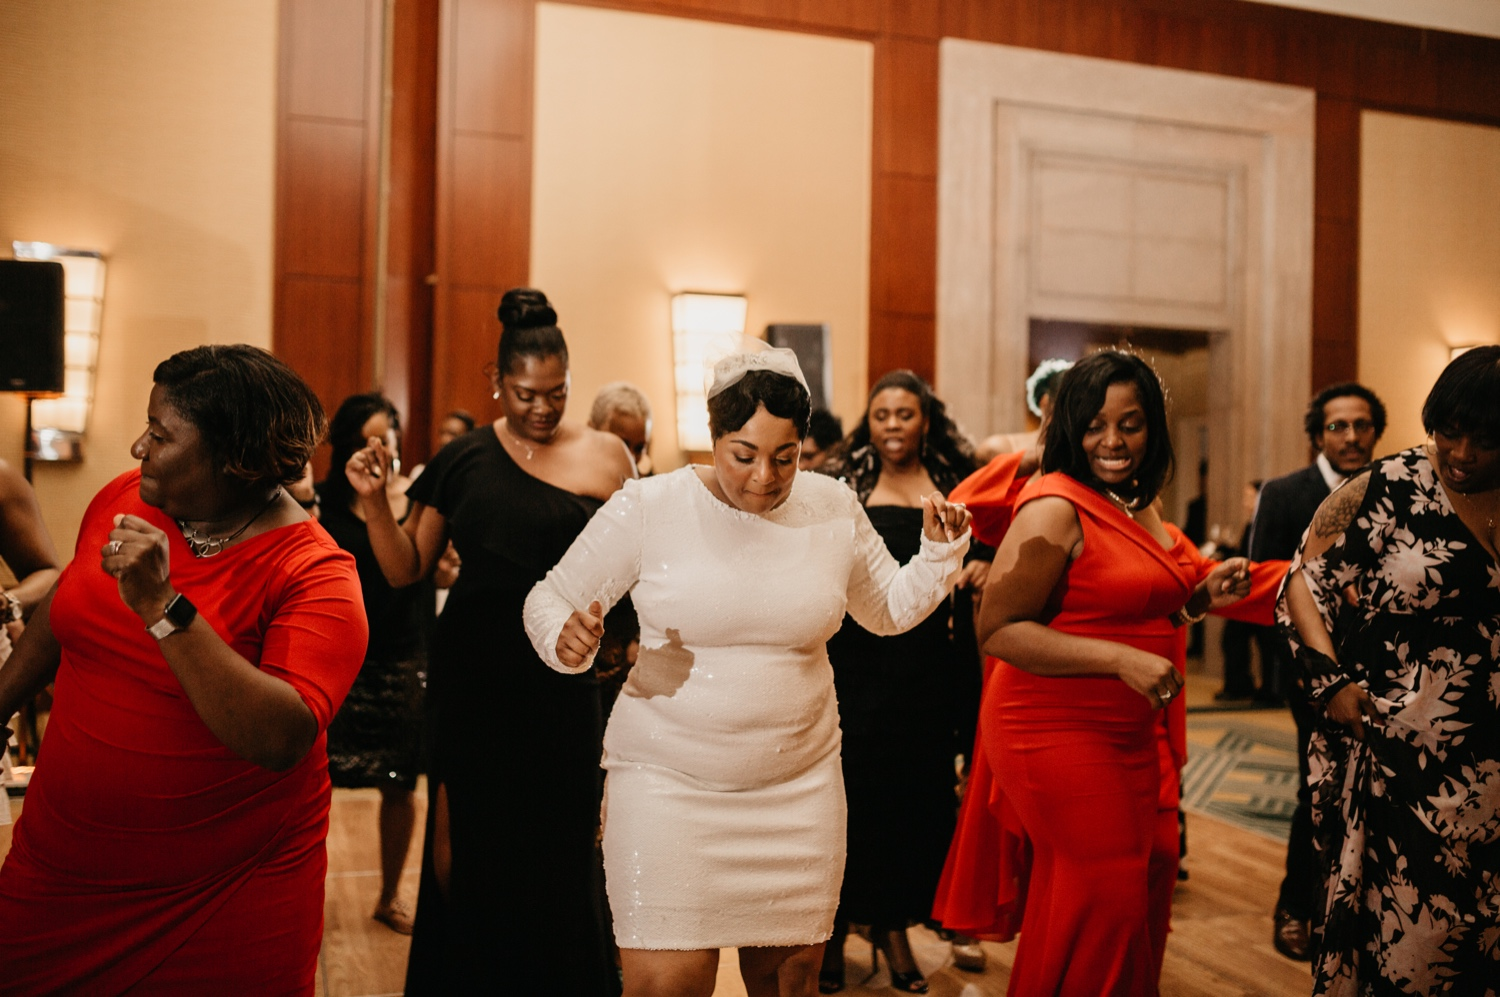 76_Ritz-carlton-wedding_charlotteNC_charlotteweddingphotographer.jpg